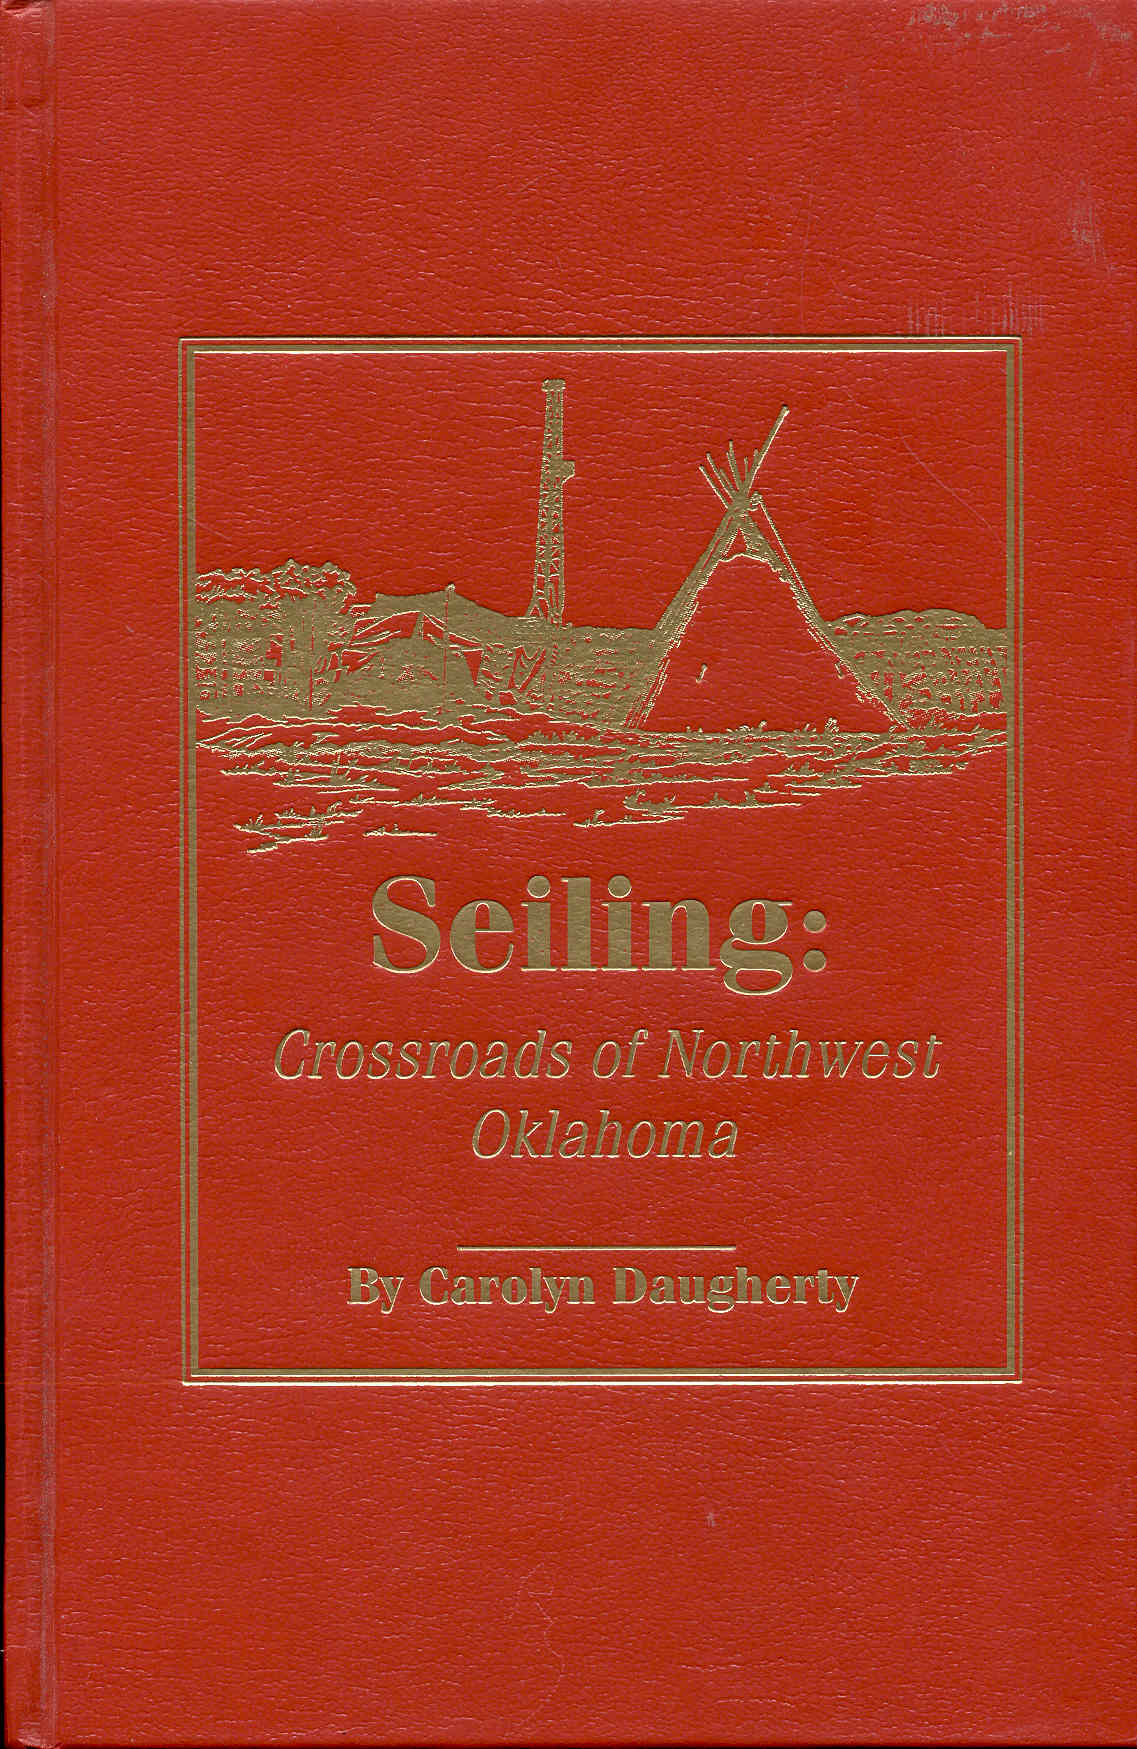 Image for Seiling: Crossroads of Northwest Oklahoma